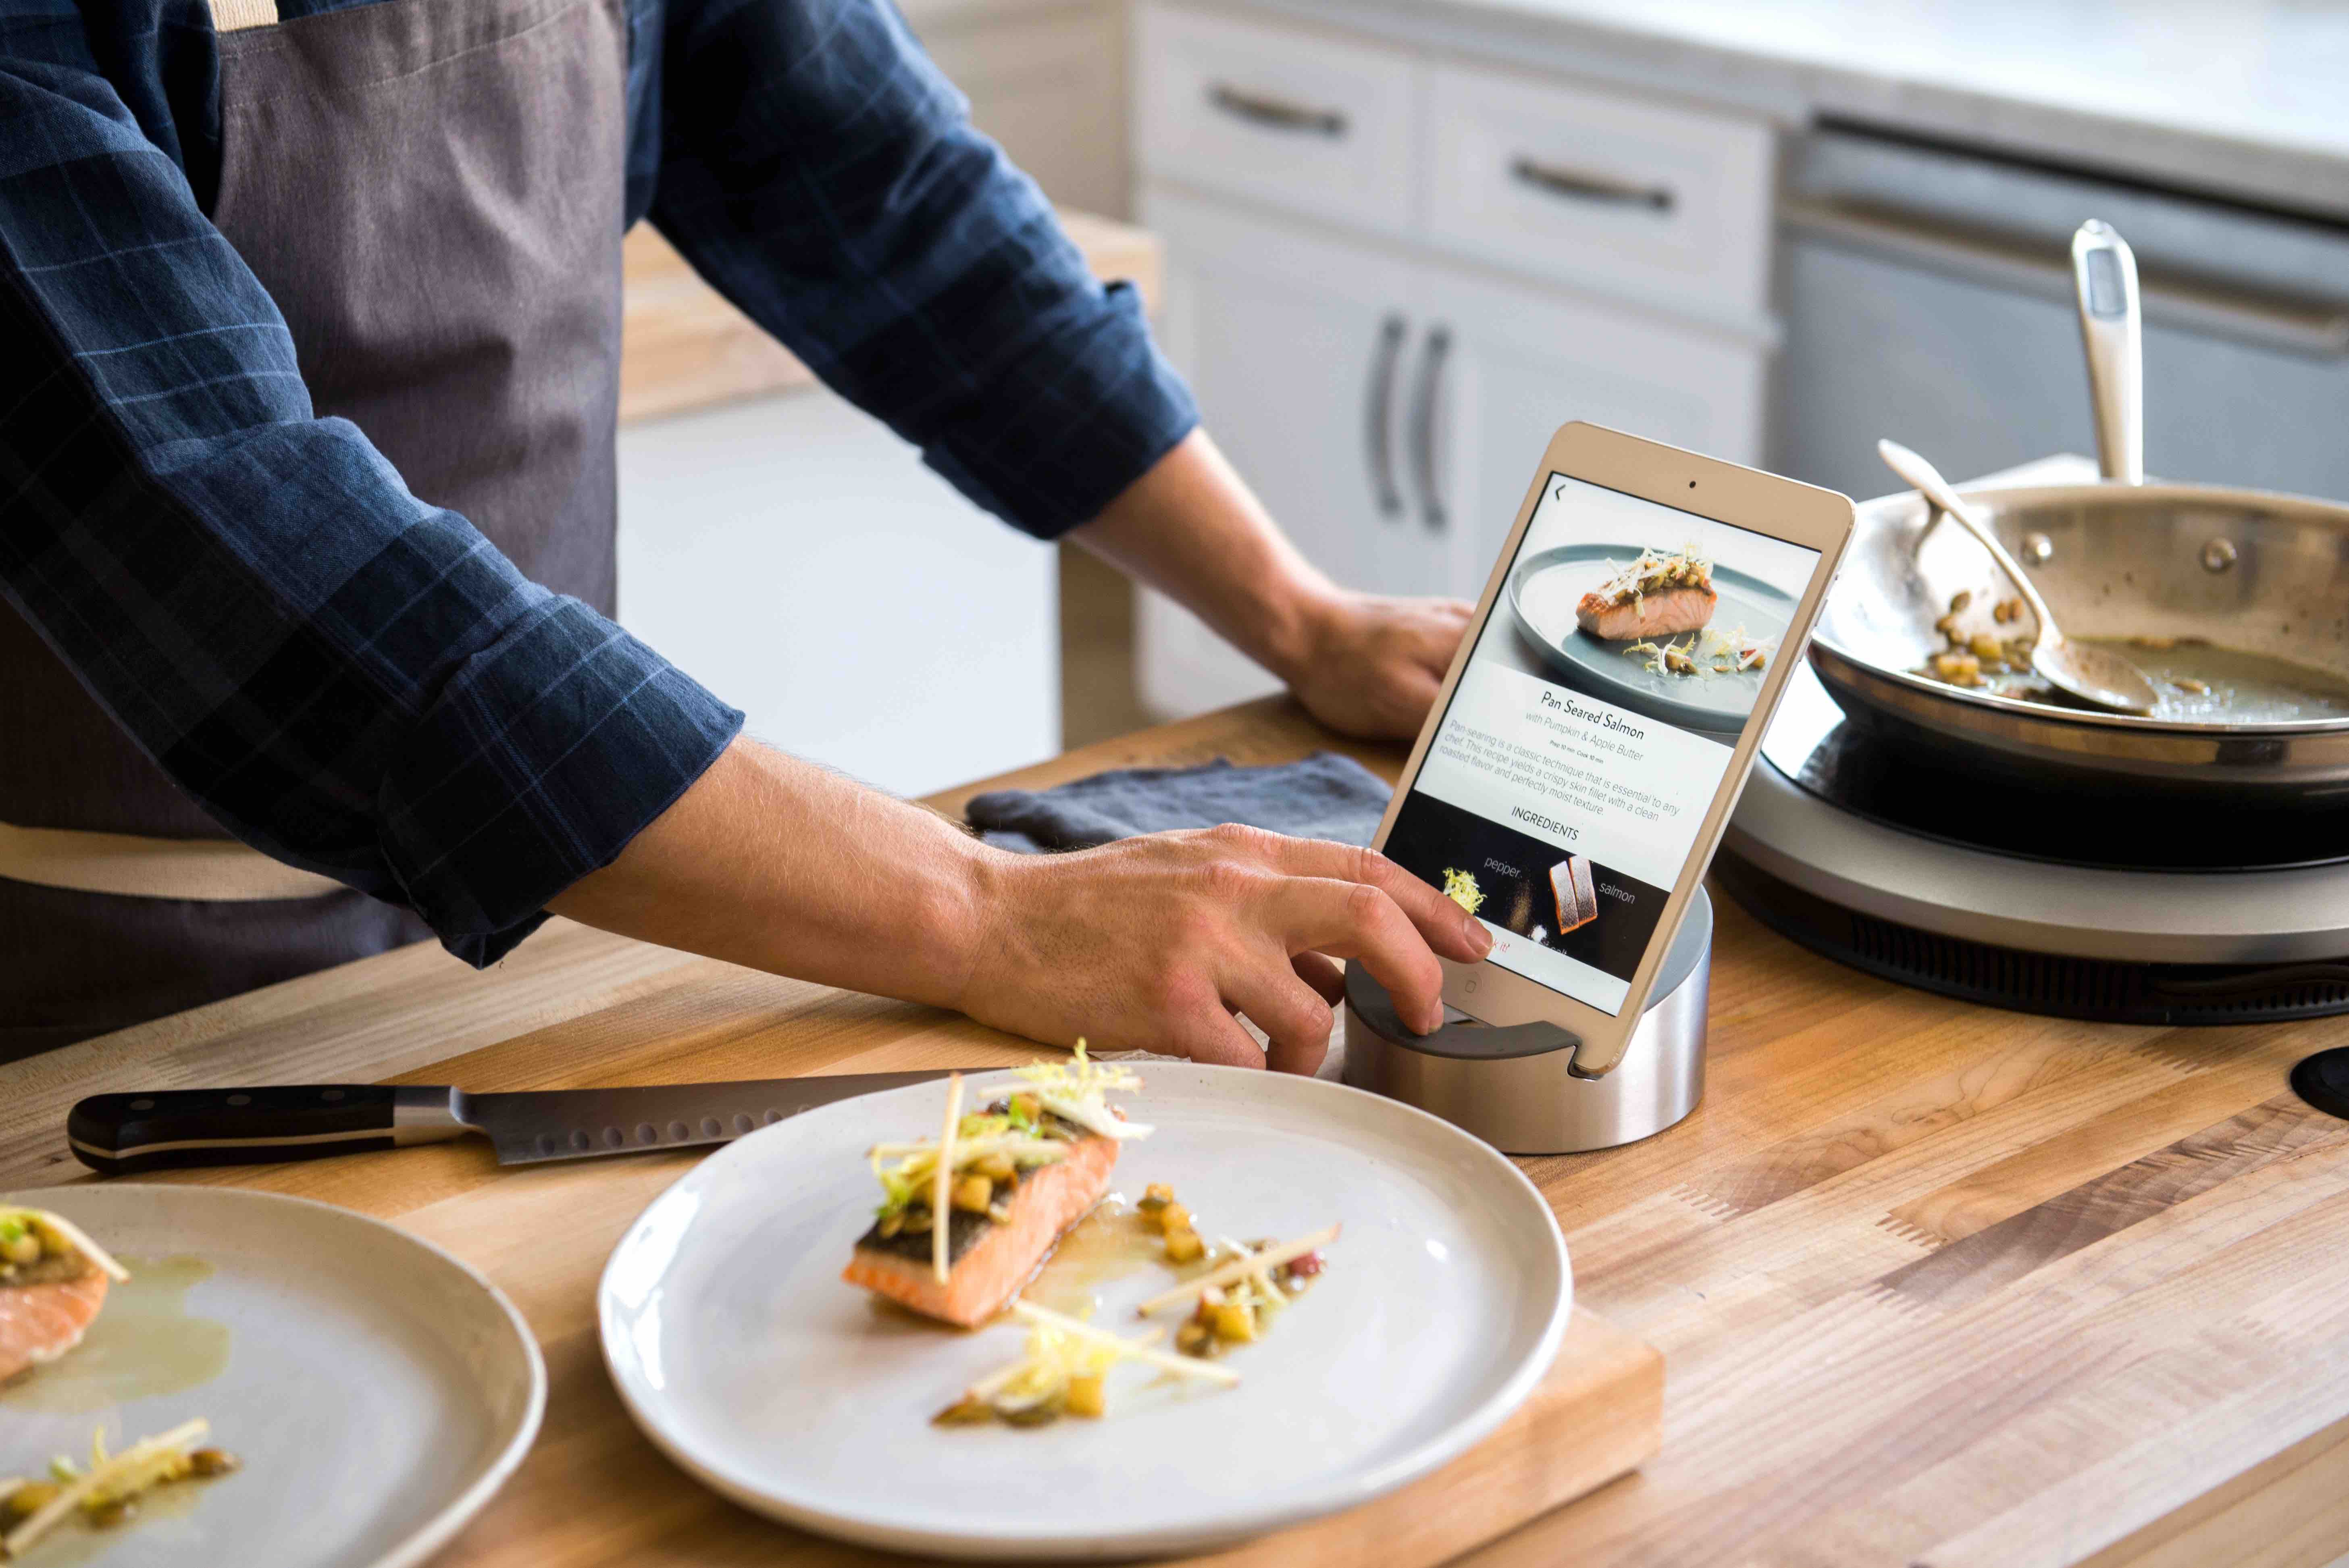 3 Smart Kitchen Gadgets To Take The Guesswork Out Of Cooking Homeadvisor